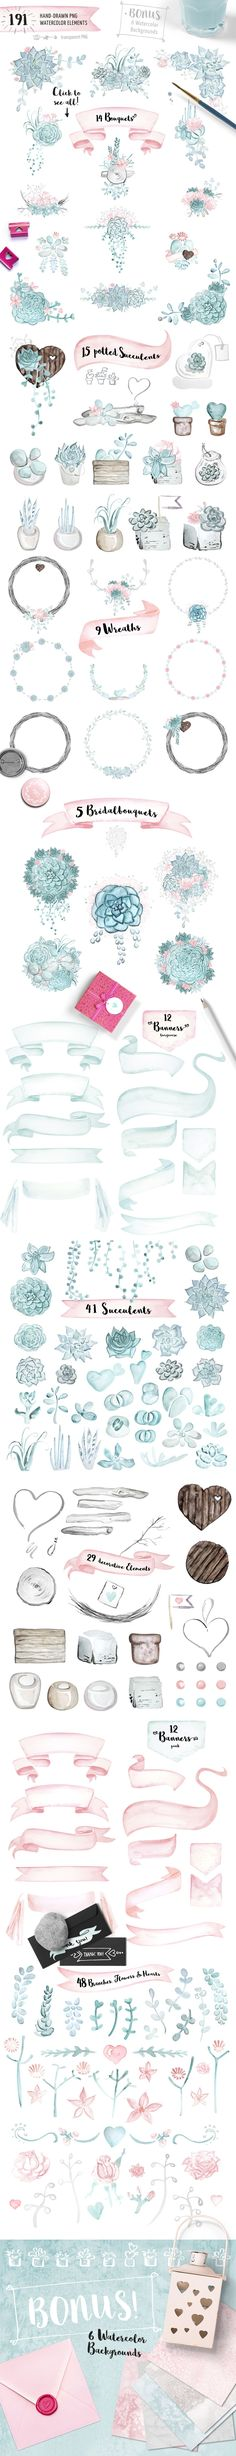 Succulent Watercolor Wedding by Doris Nawratil on Creative Market - Ideen finanzieren Watercolor Wedding, Watercolor Cards, Watercolor Background, Watercolour, Watercolor Design, Watercolor Border, Art And Illustration, Save The Date Designs, Digital Paintings